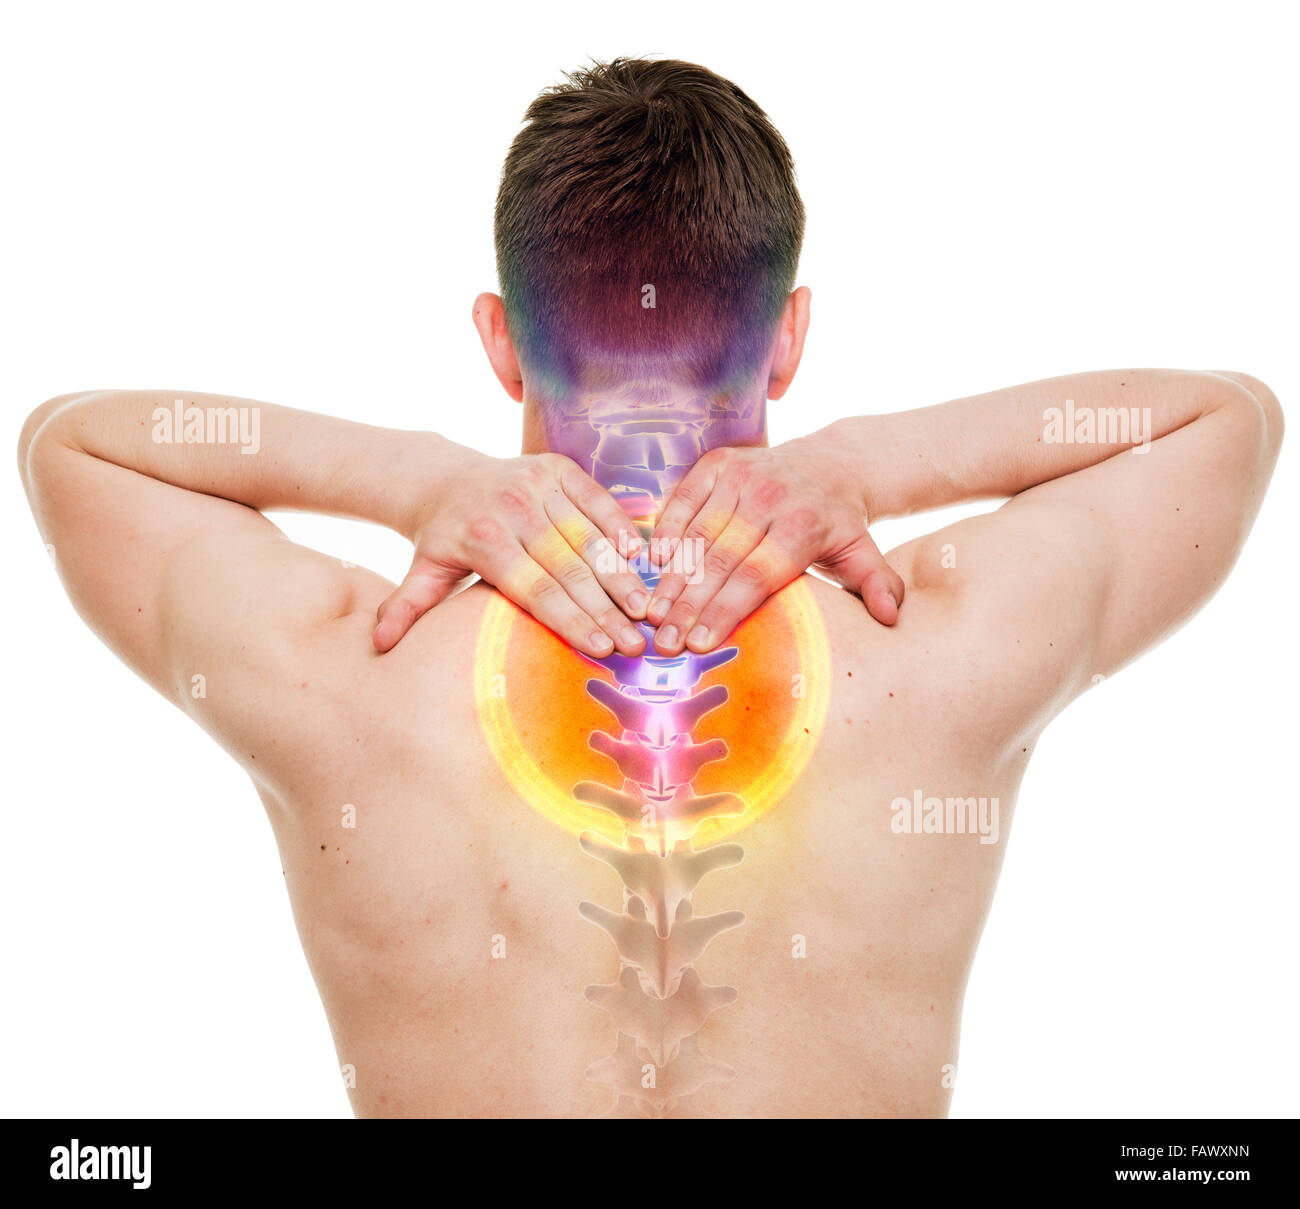 NECK Pain - Male Hurt Cervical Spine isolated on white - REAL ...